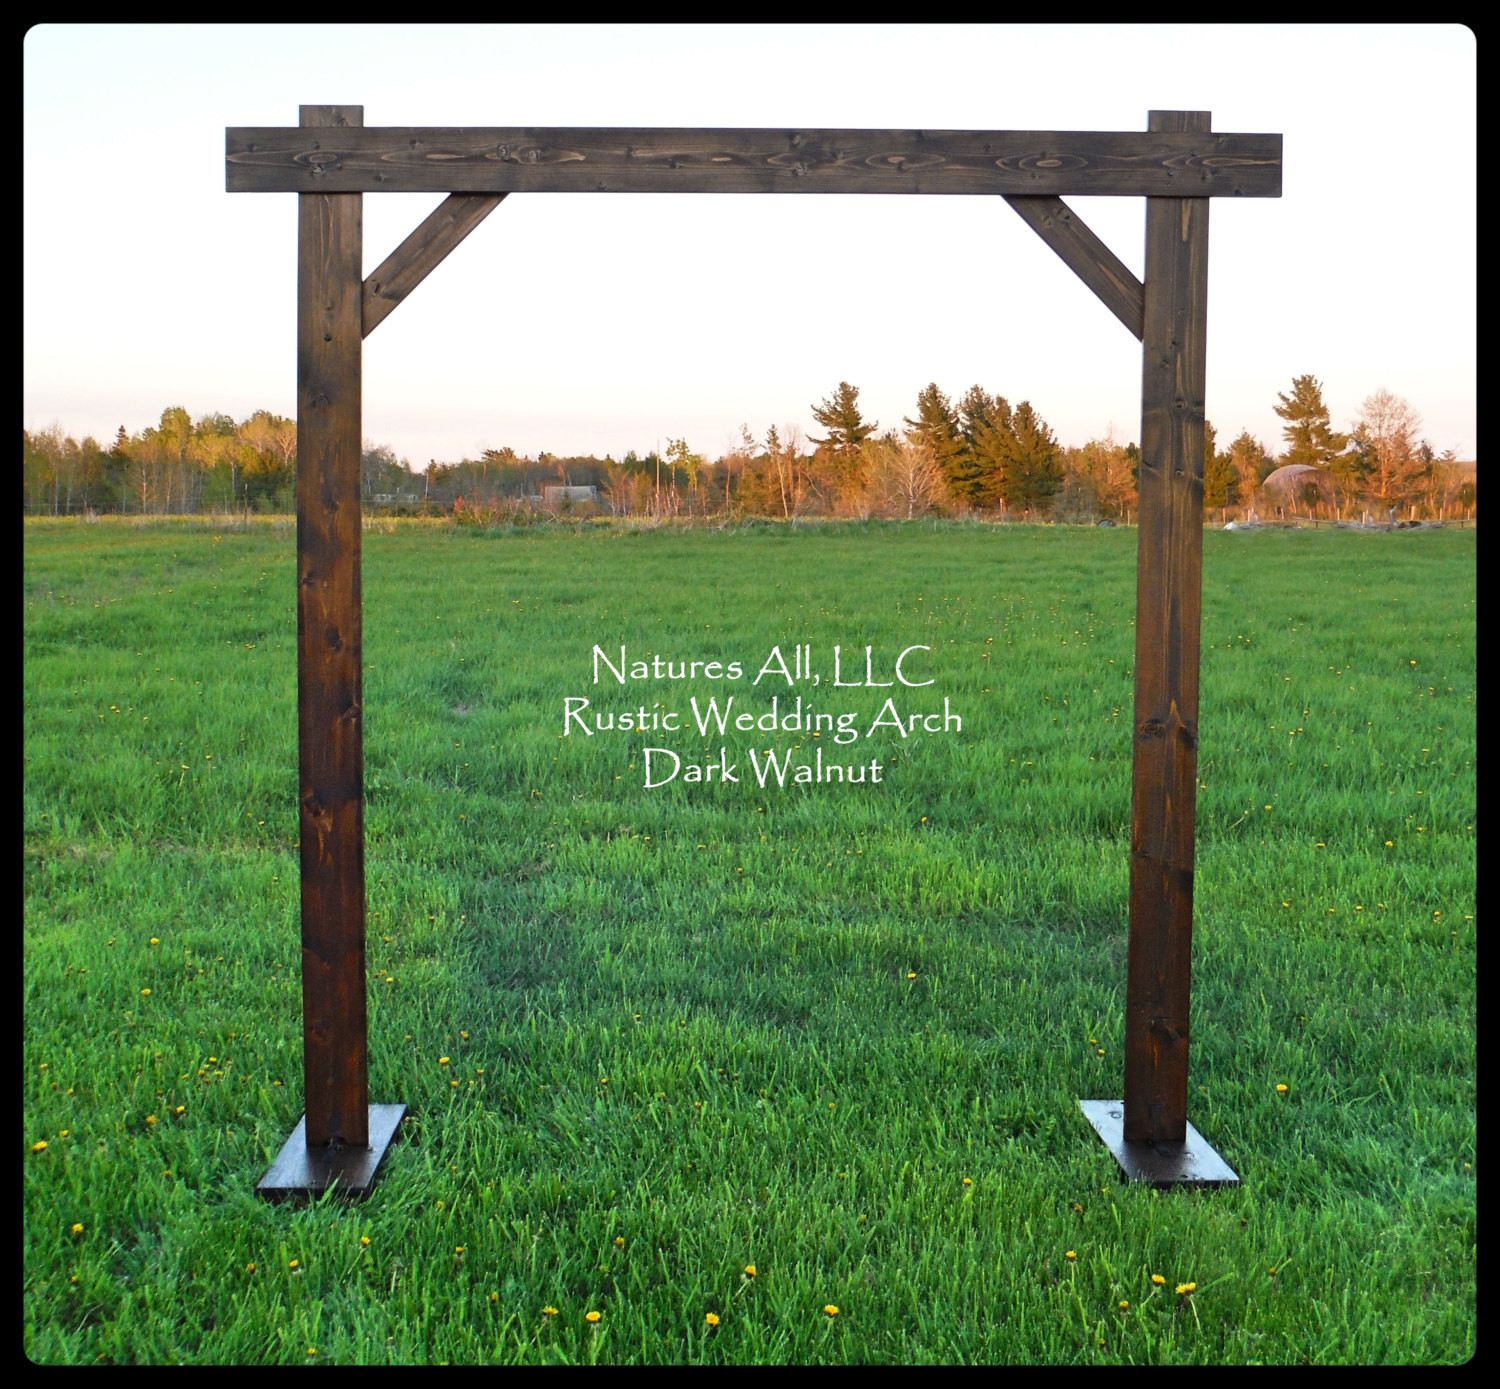 Best ideas about DIY Wedding Arch Kits . Save or Pin Wedding Arch Wedding Arbor Rustic Wedding Arch plete Now.